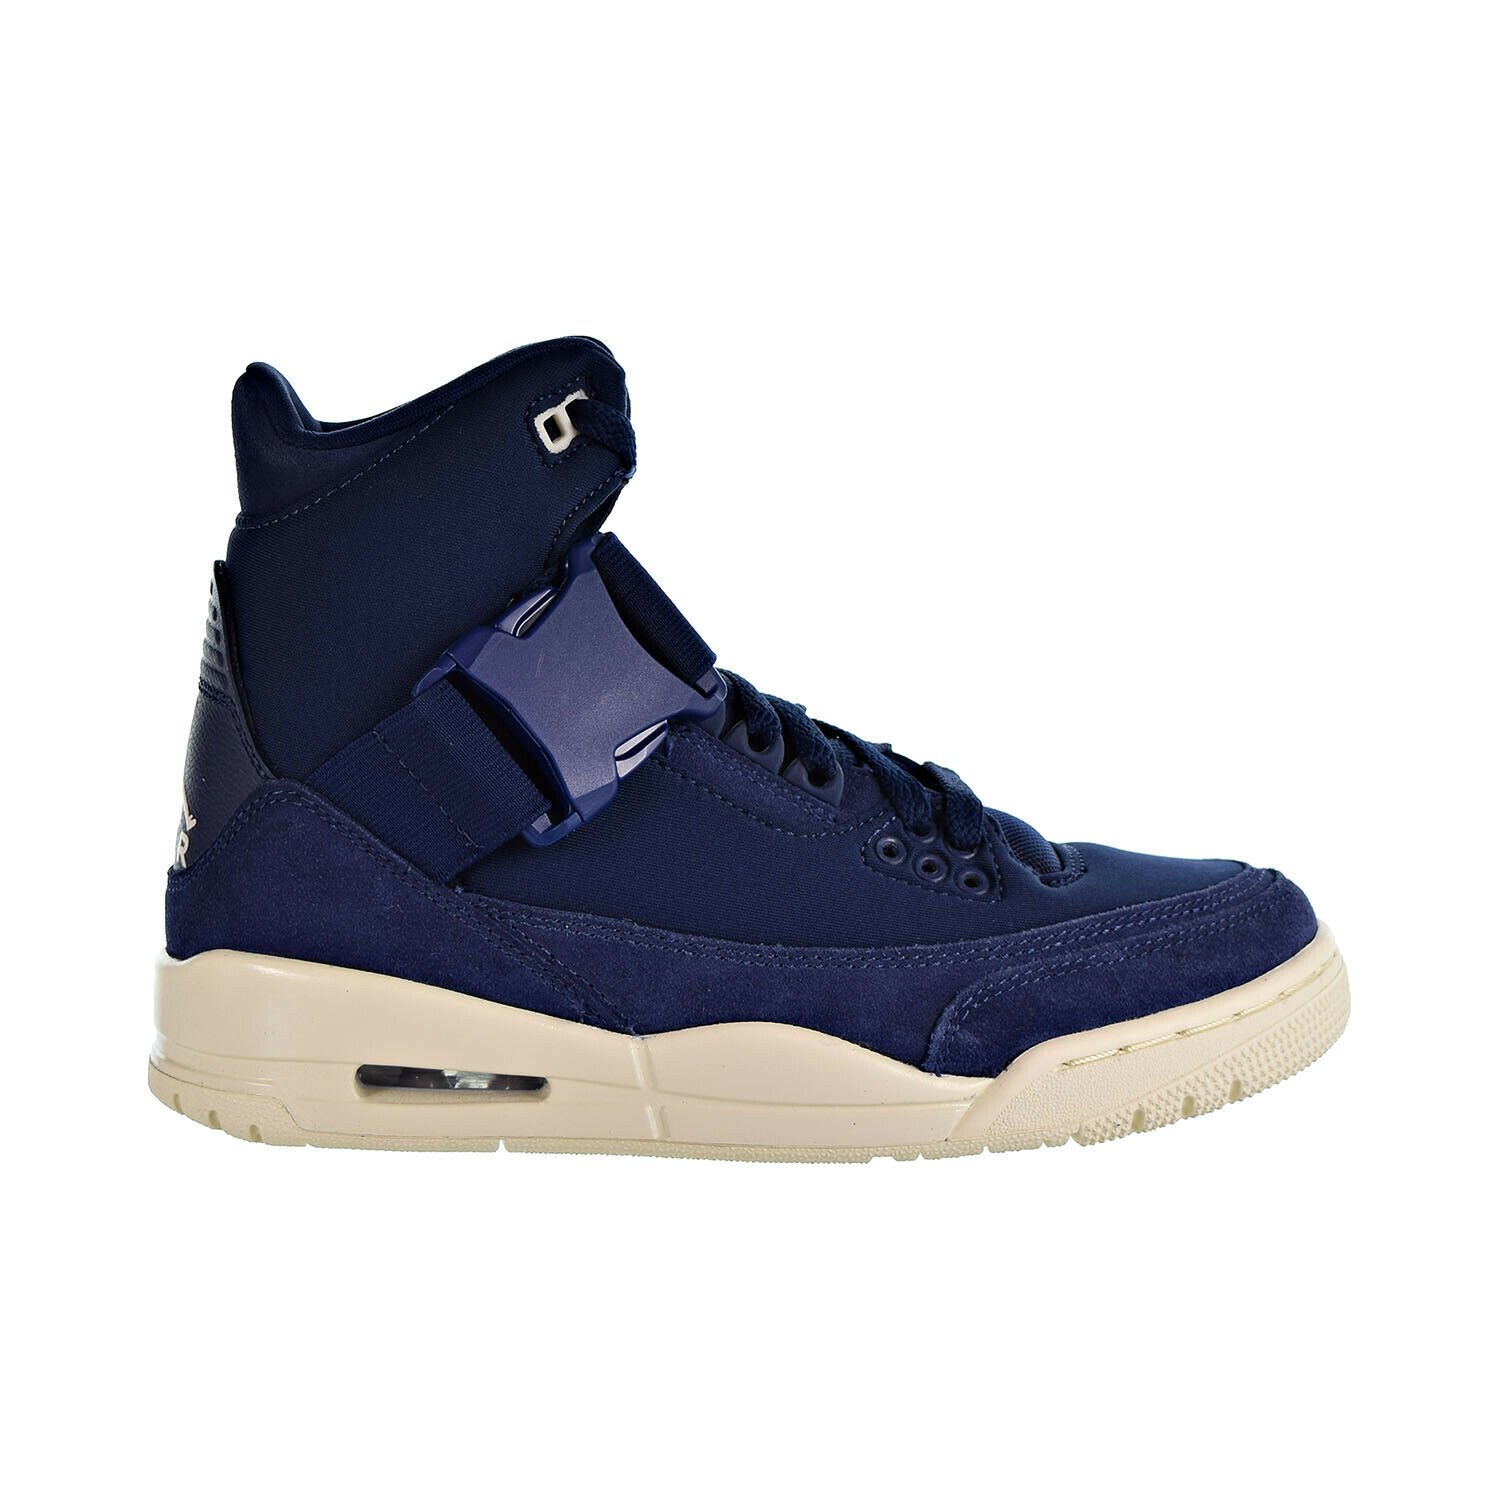 Primary image for Air Jordan 3 Retro Explorer XX Women's Shoes Midnight Navy BQ0006-401